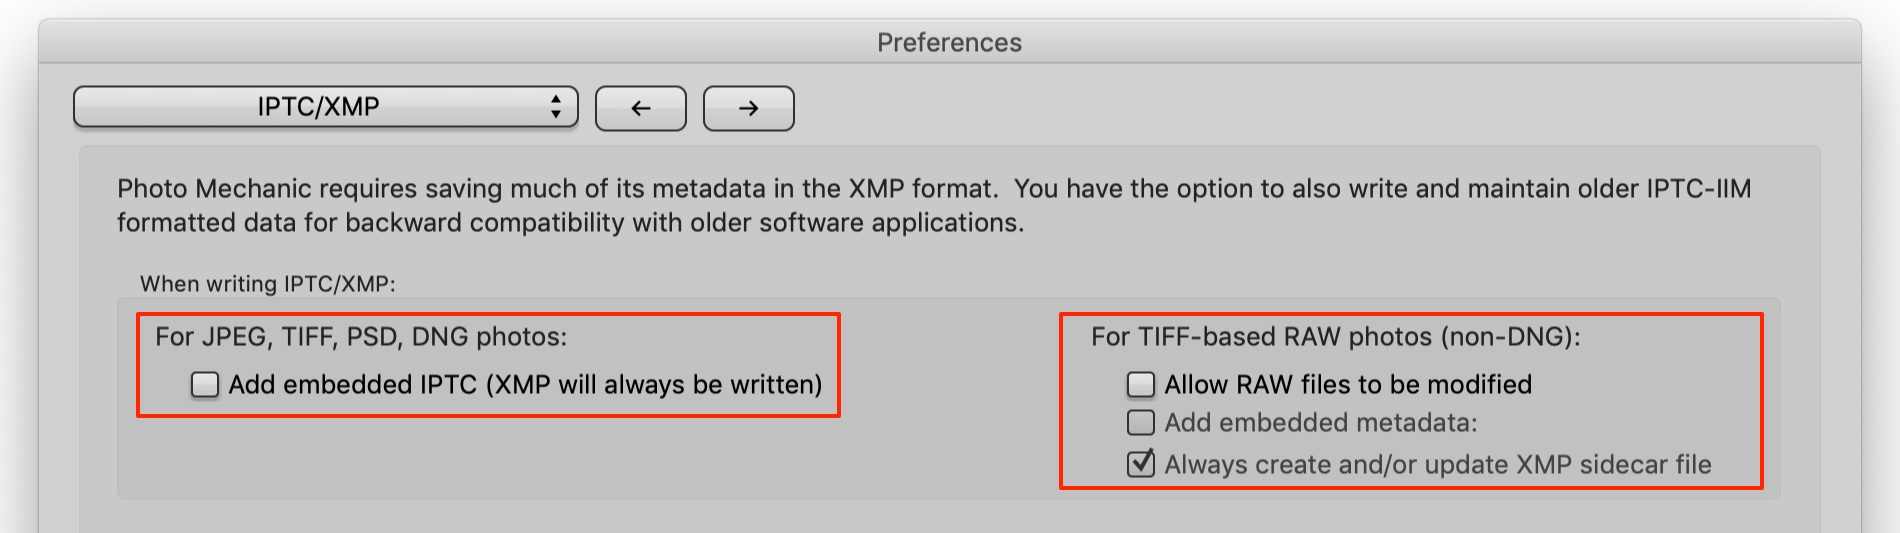 preferences, IPTC and xmp, photo mechanic 6